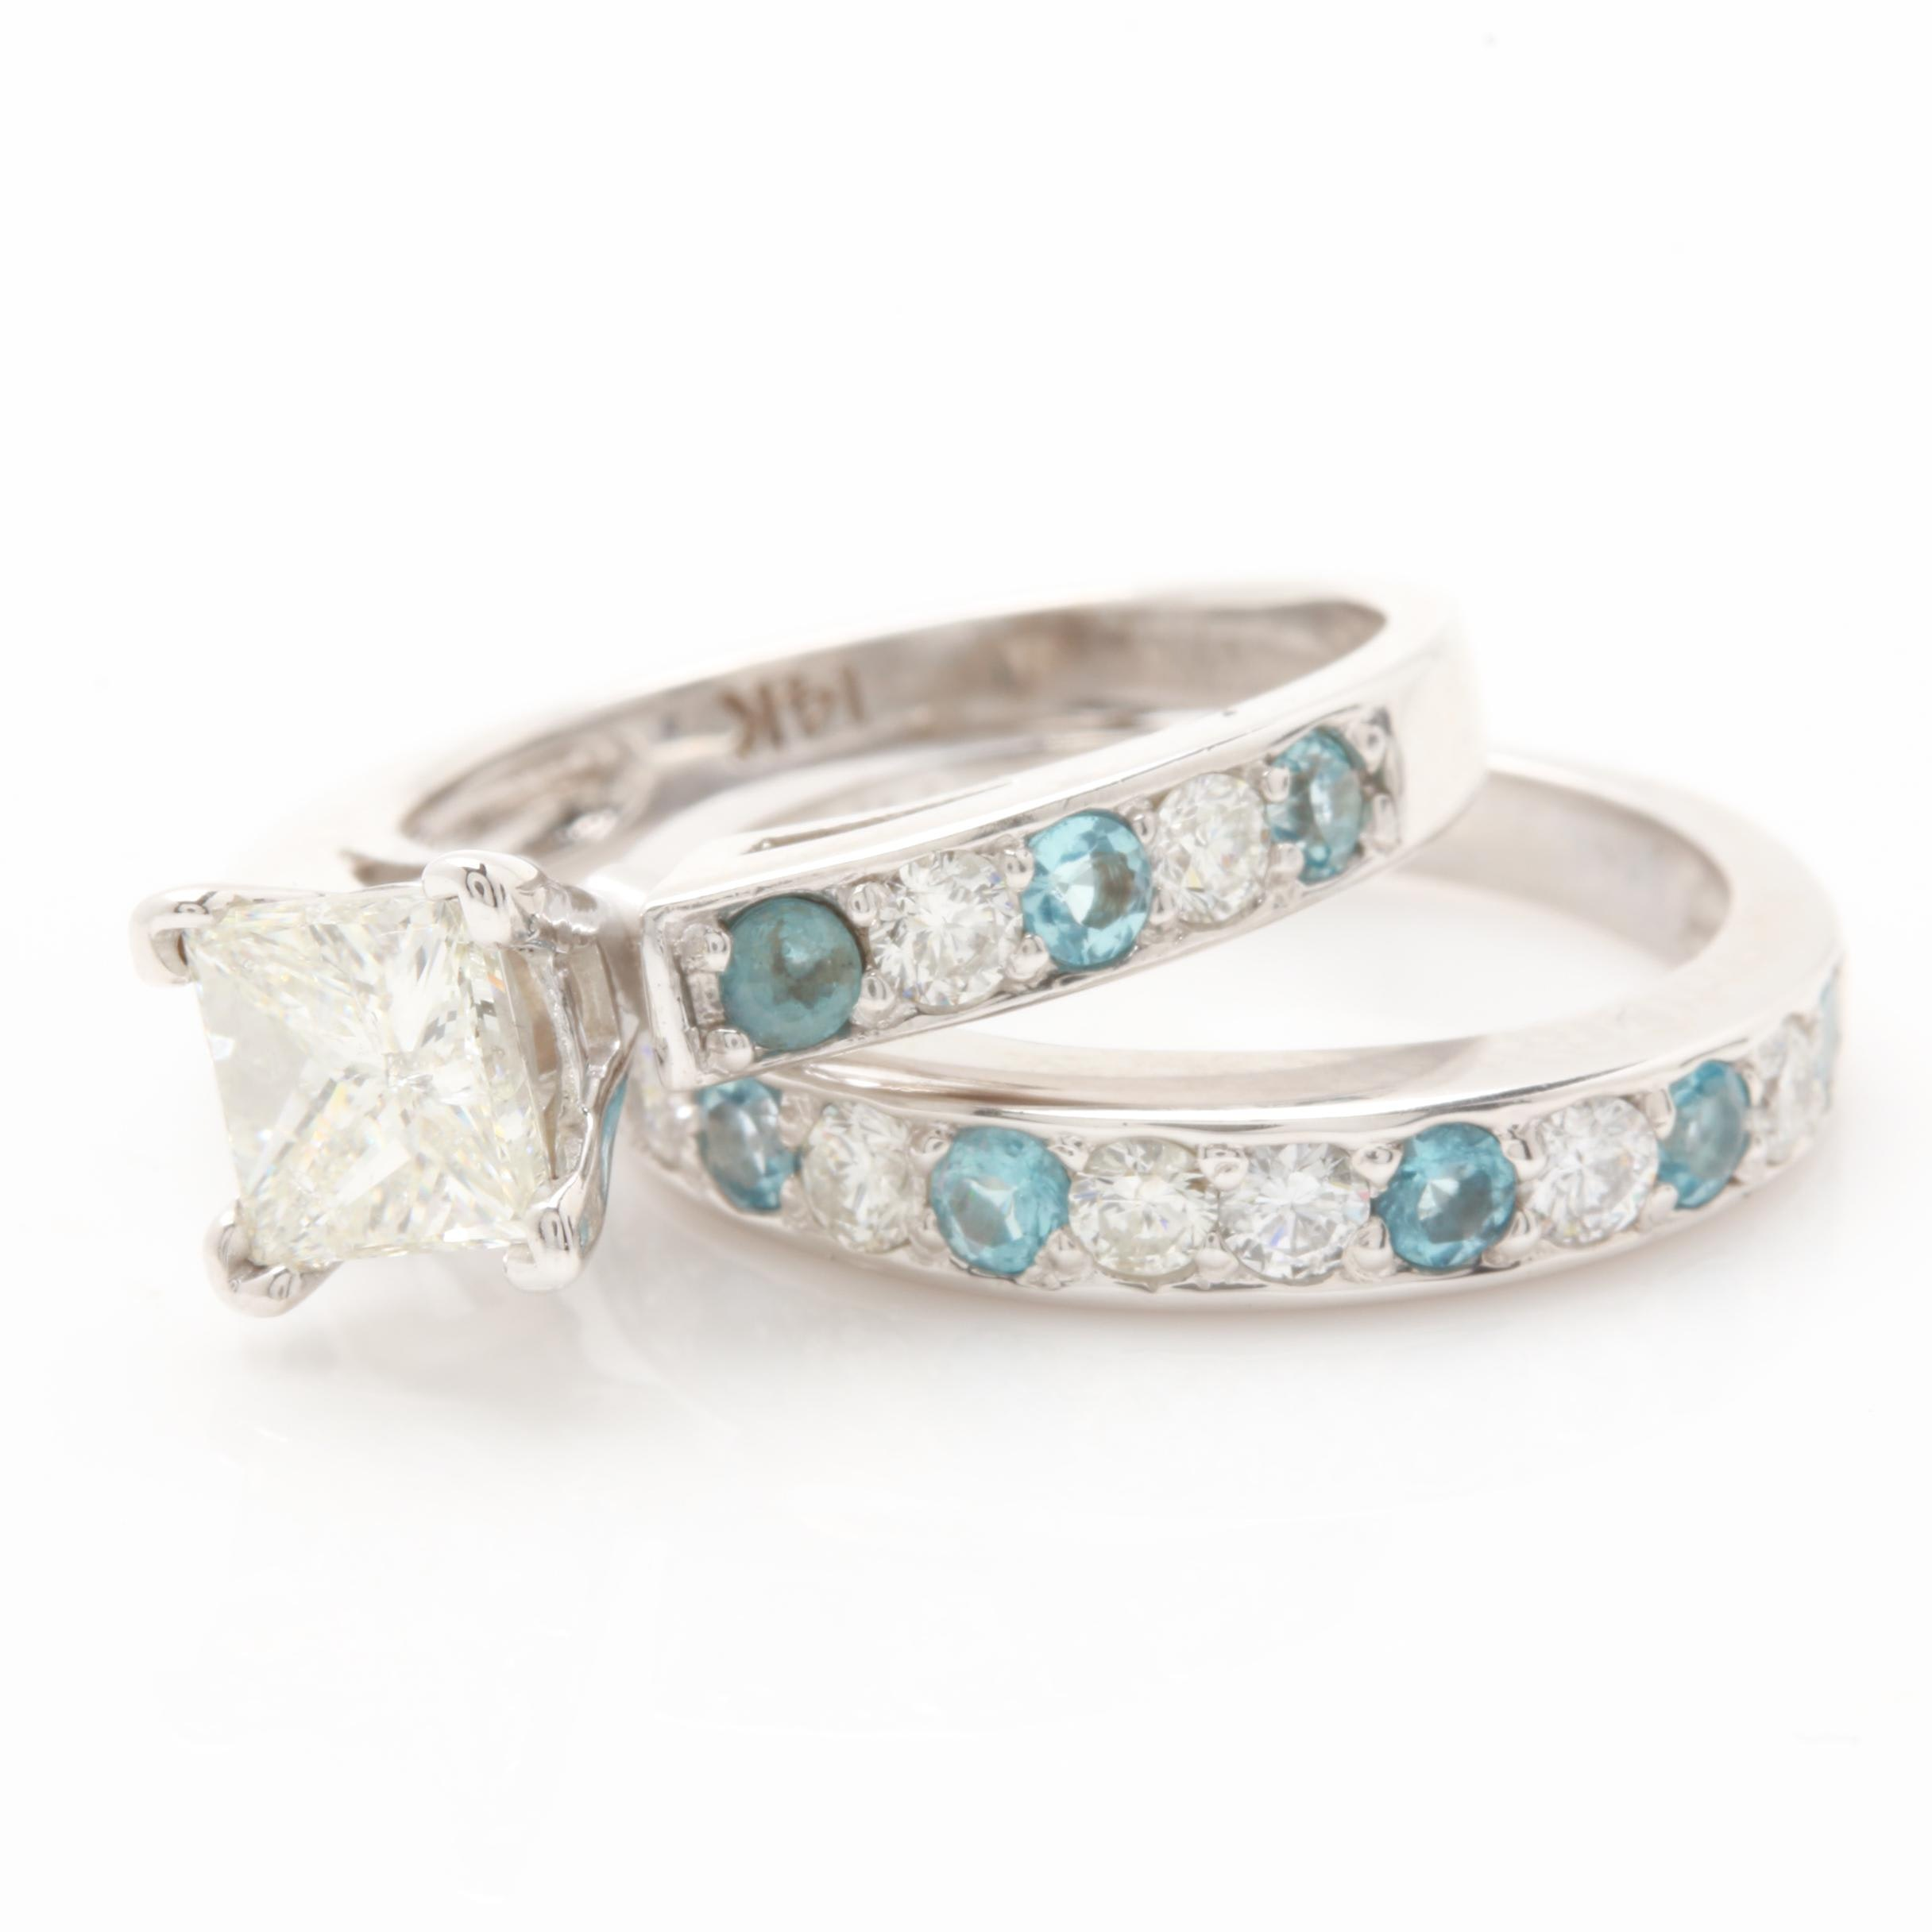 14K White Gold 1.48 CTW Diamond and Blue Spinel Ring Set